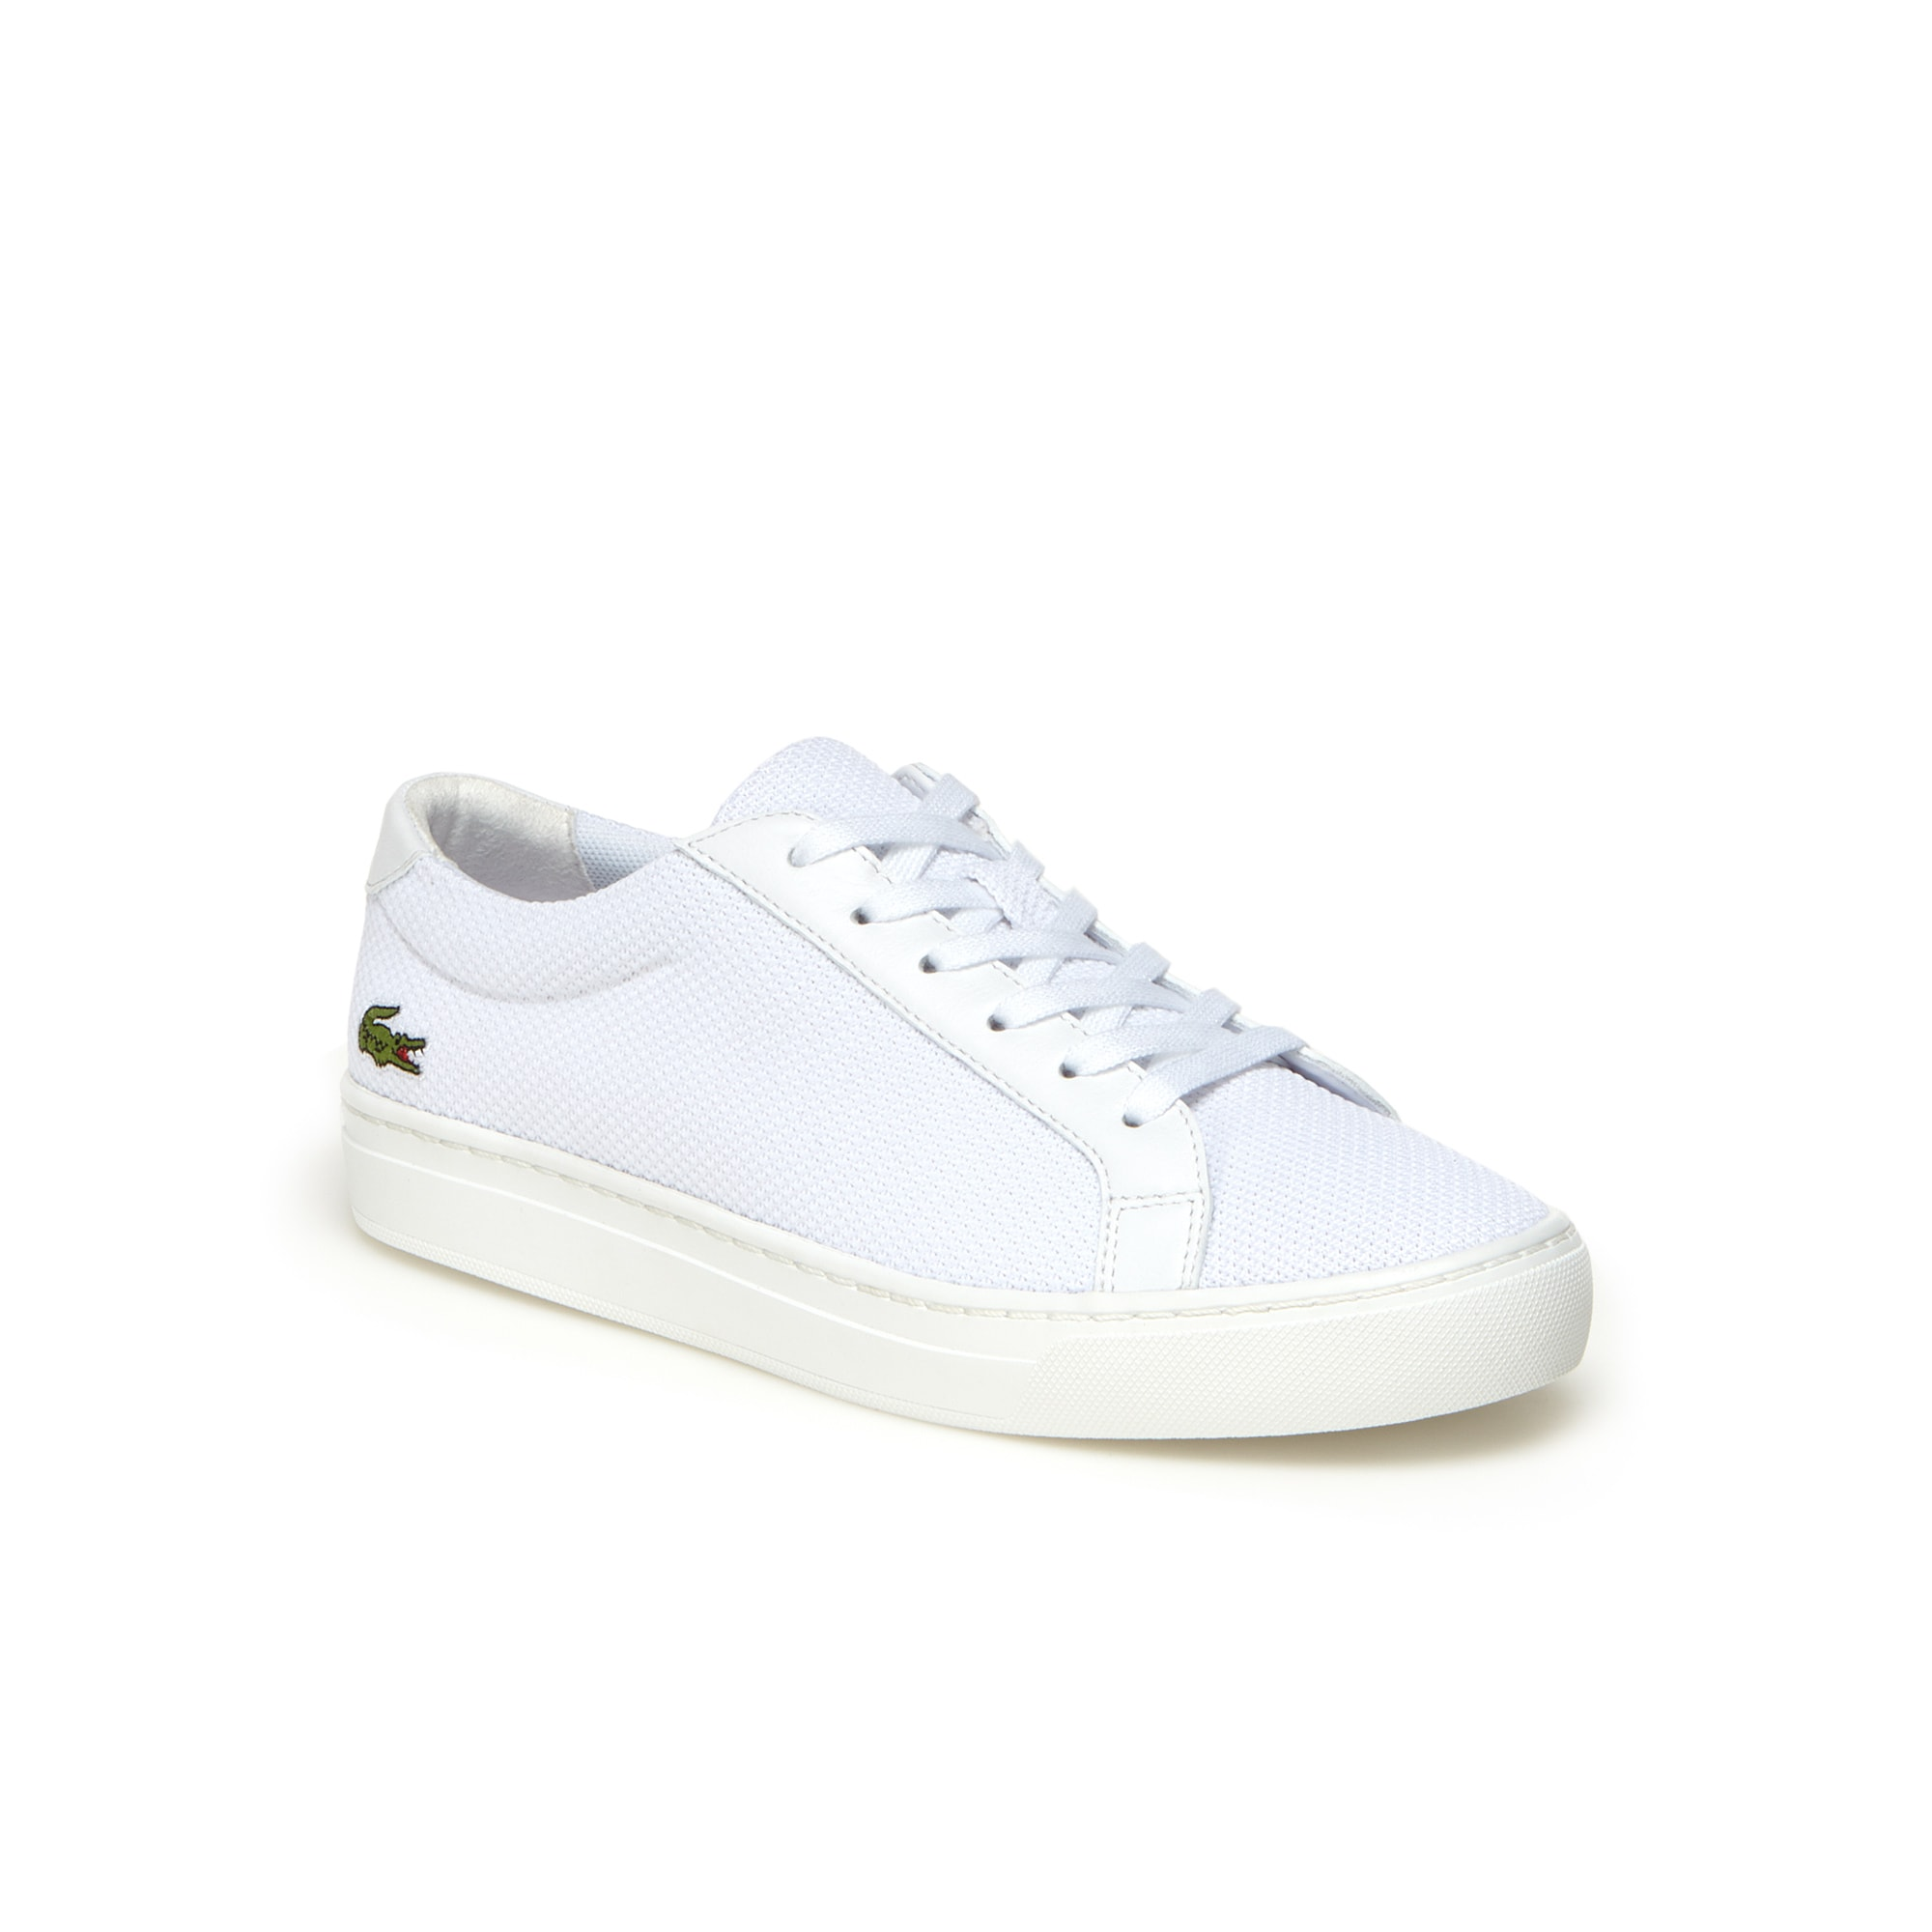 Children's L.12.12 BL Textile and Leather Trainers